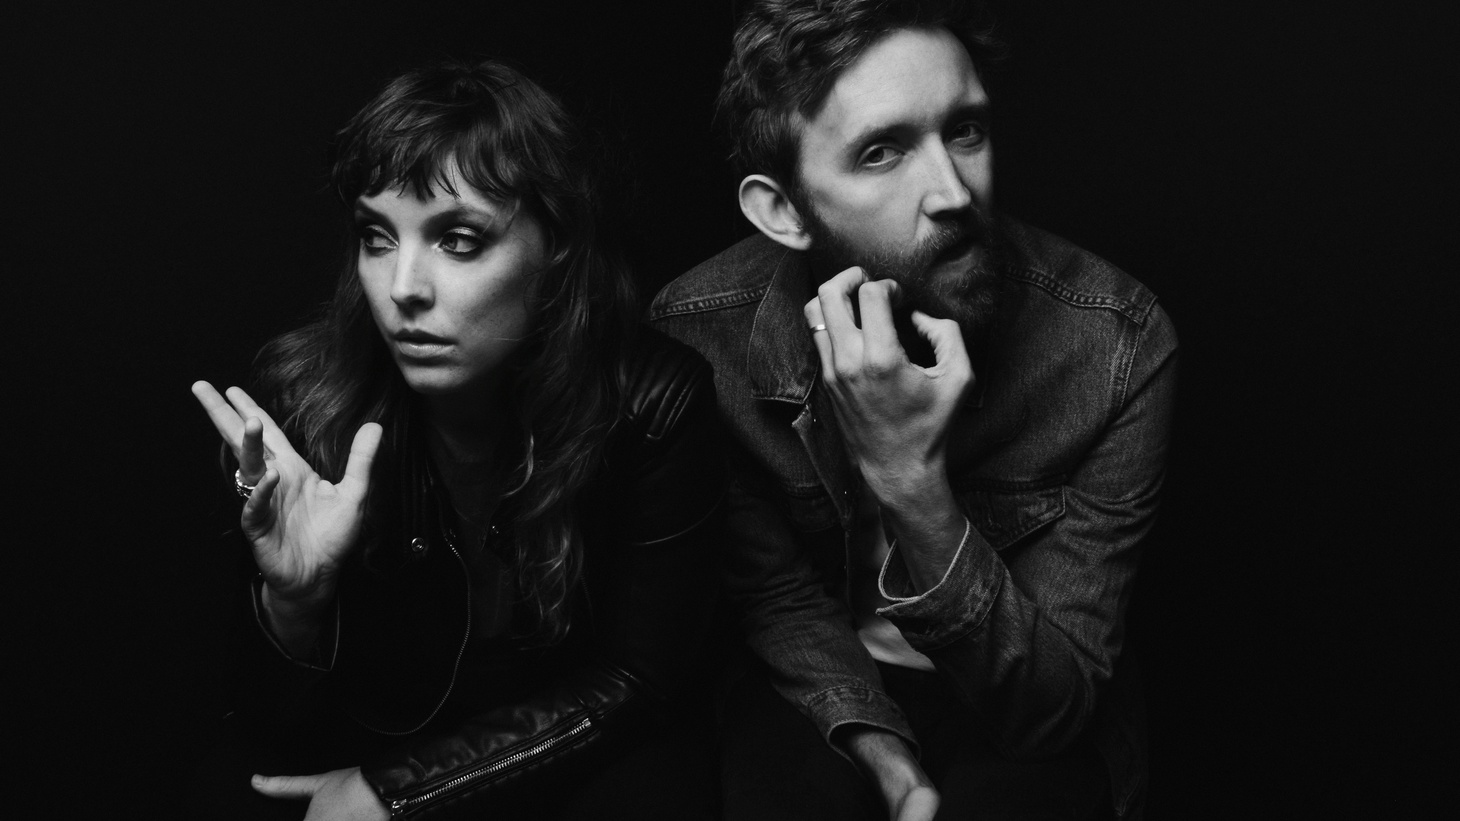 Sylvan Esso began as a chance meeting between two very different, but very talented musicians -- singer Amelia Meath and producer Nick Sanborn. After three years of touring behind their acclaimed debut, anticipation has been building for a follow up.